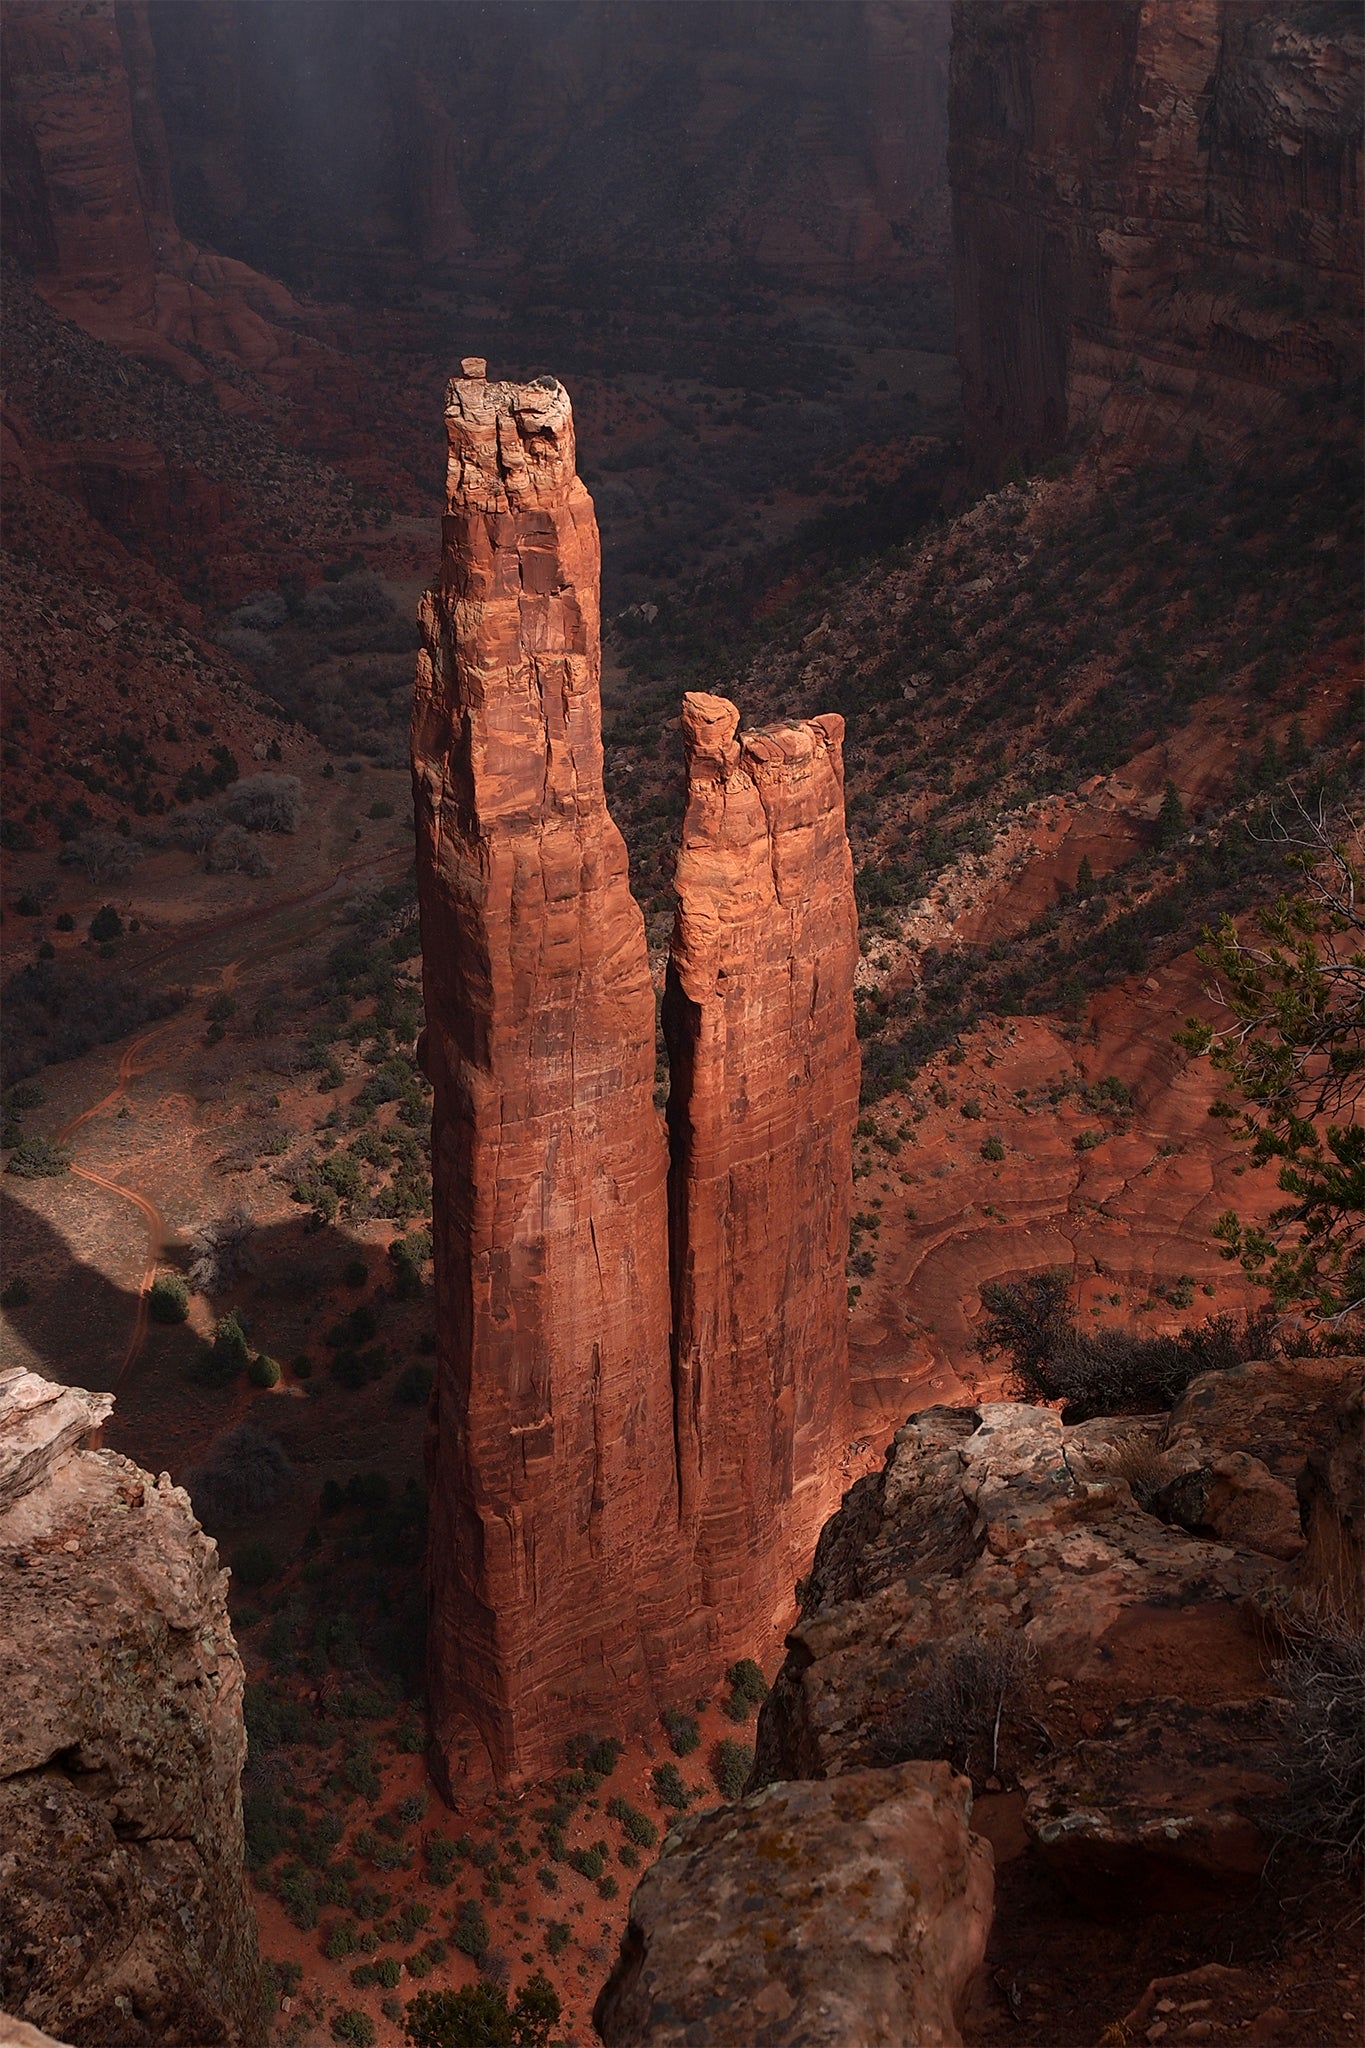 Spider Rock - photo on canvas by Dennis Nejtek